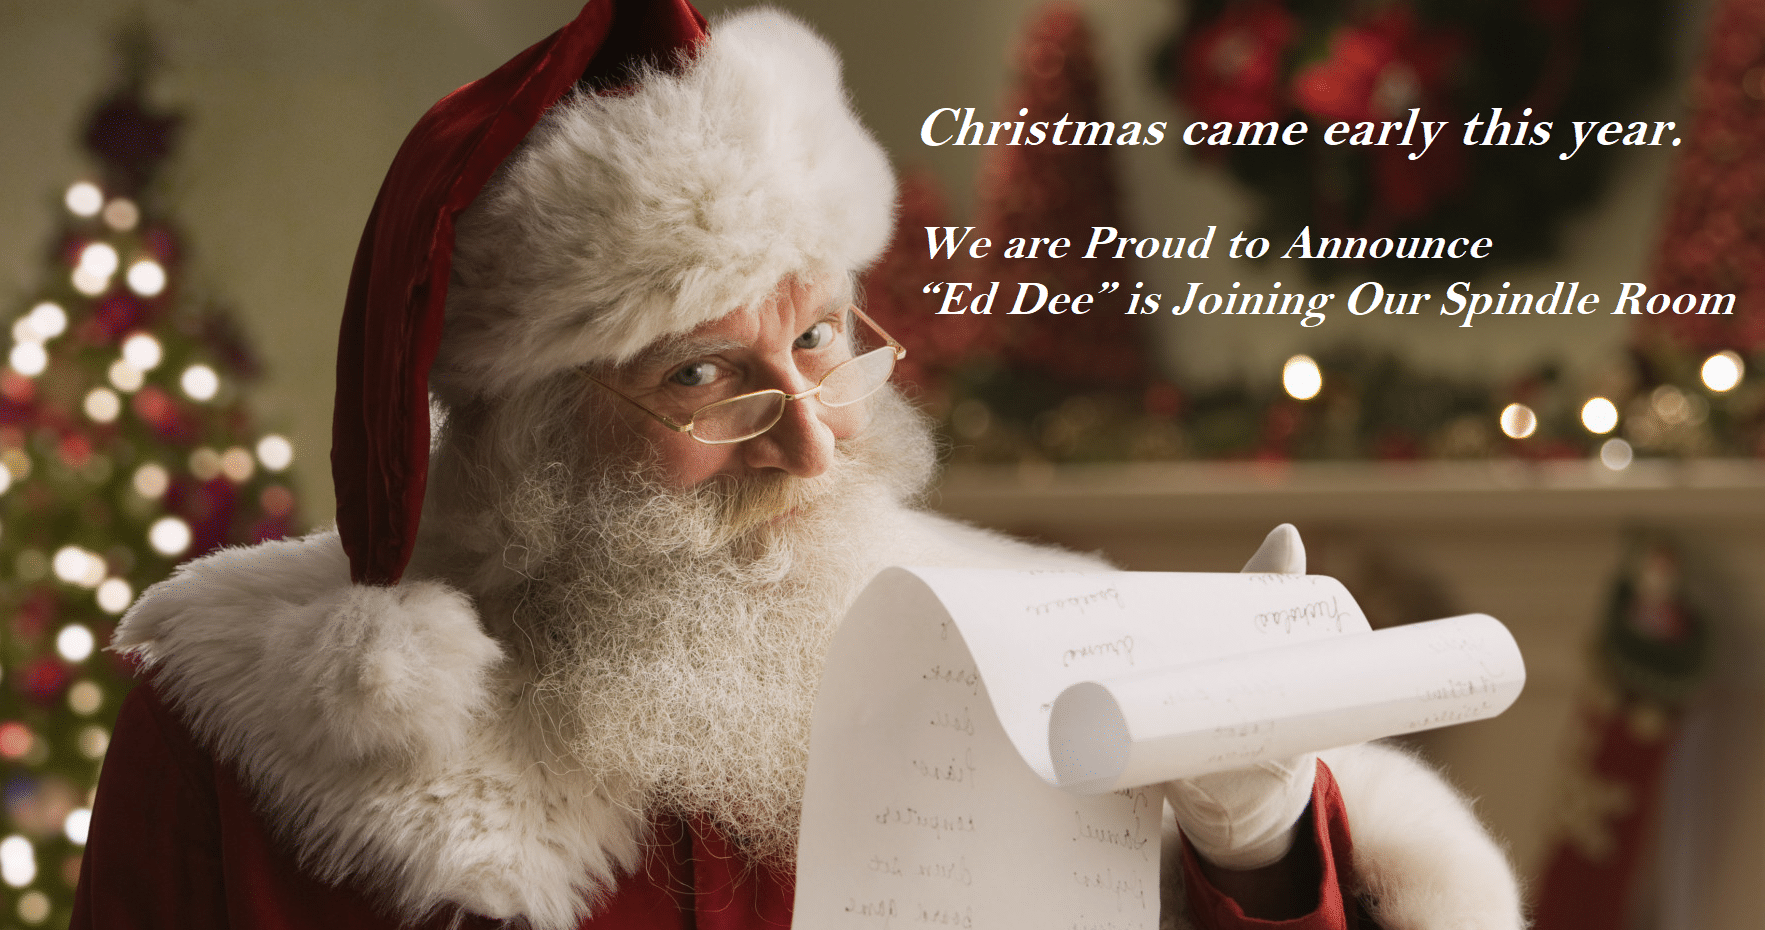 Ed Dee is Joining Our Spindle Room!!!  Ho, Ho, Ho, Merry Christmas!!!